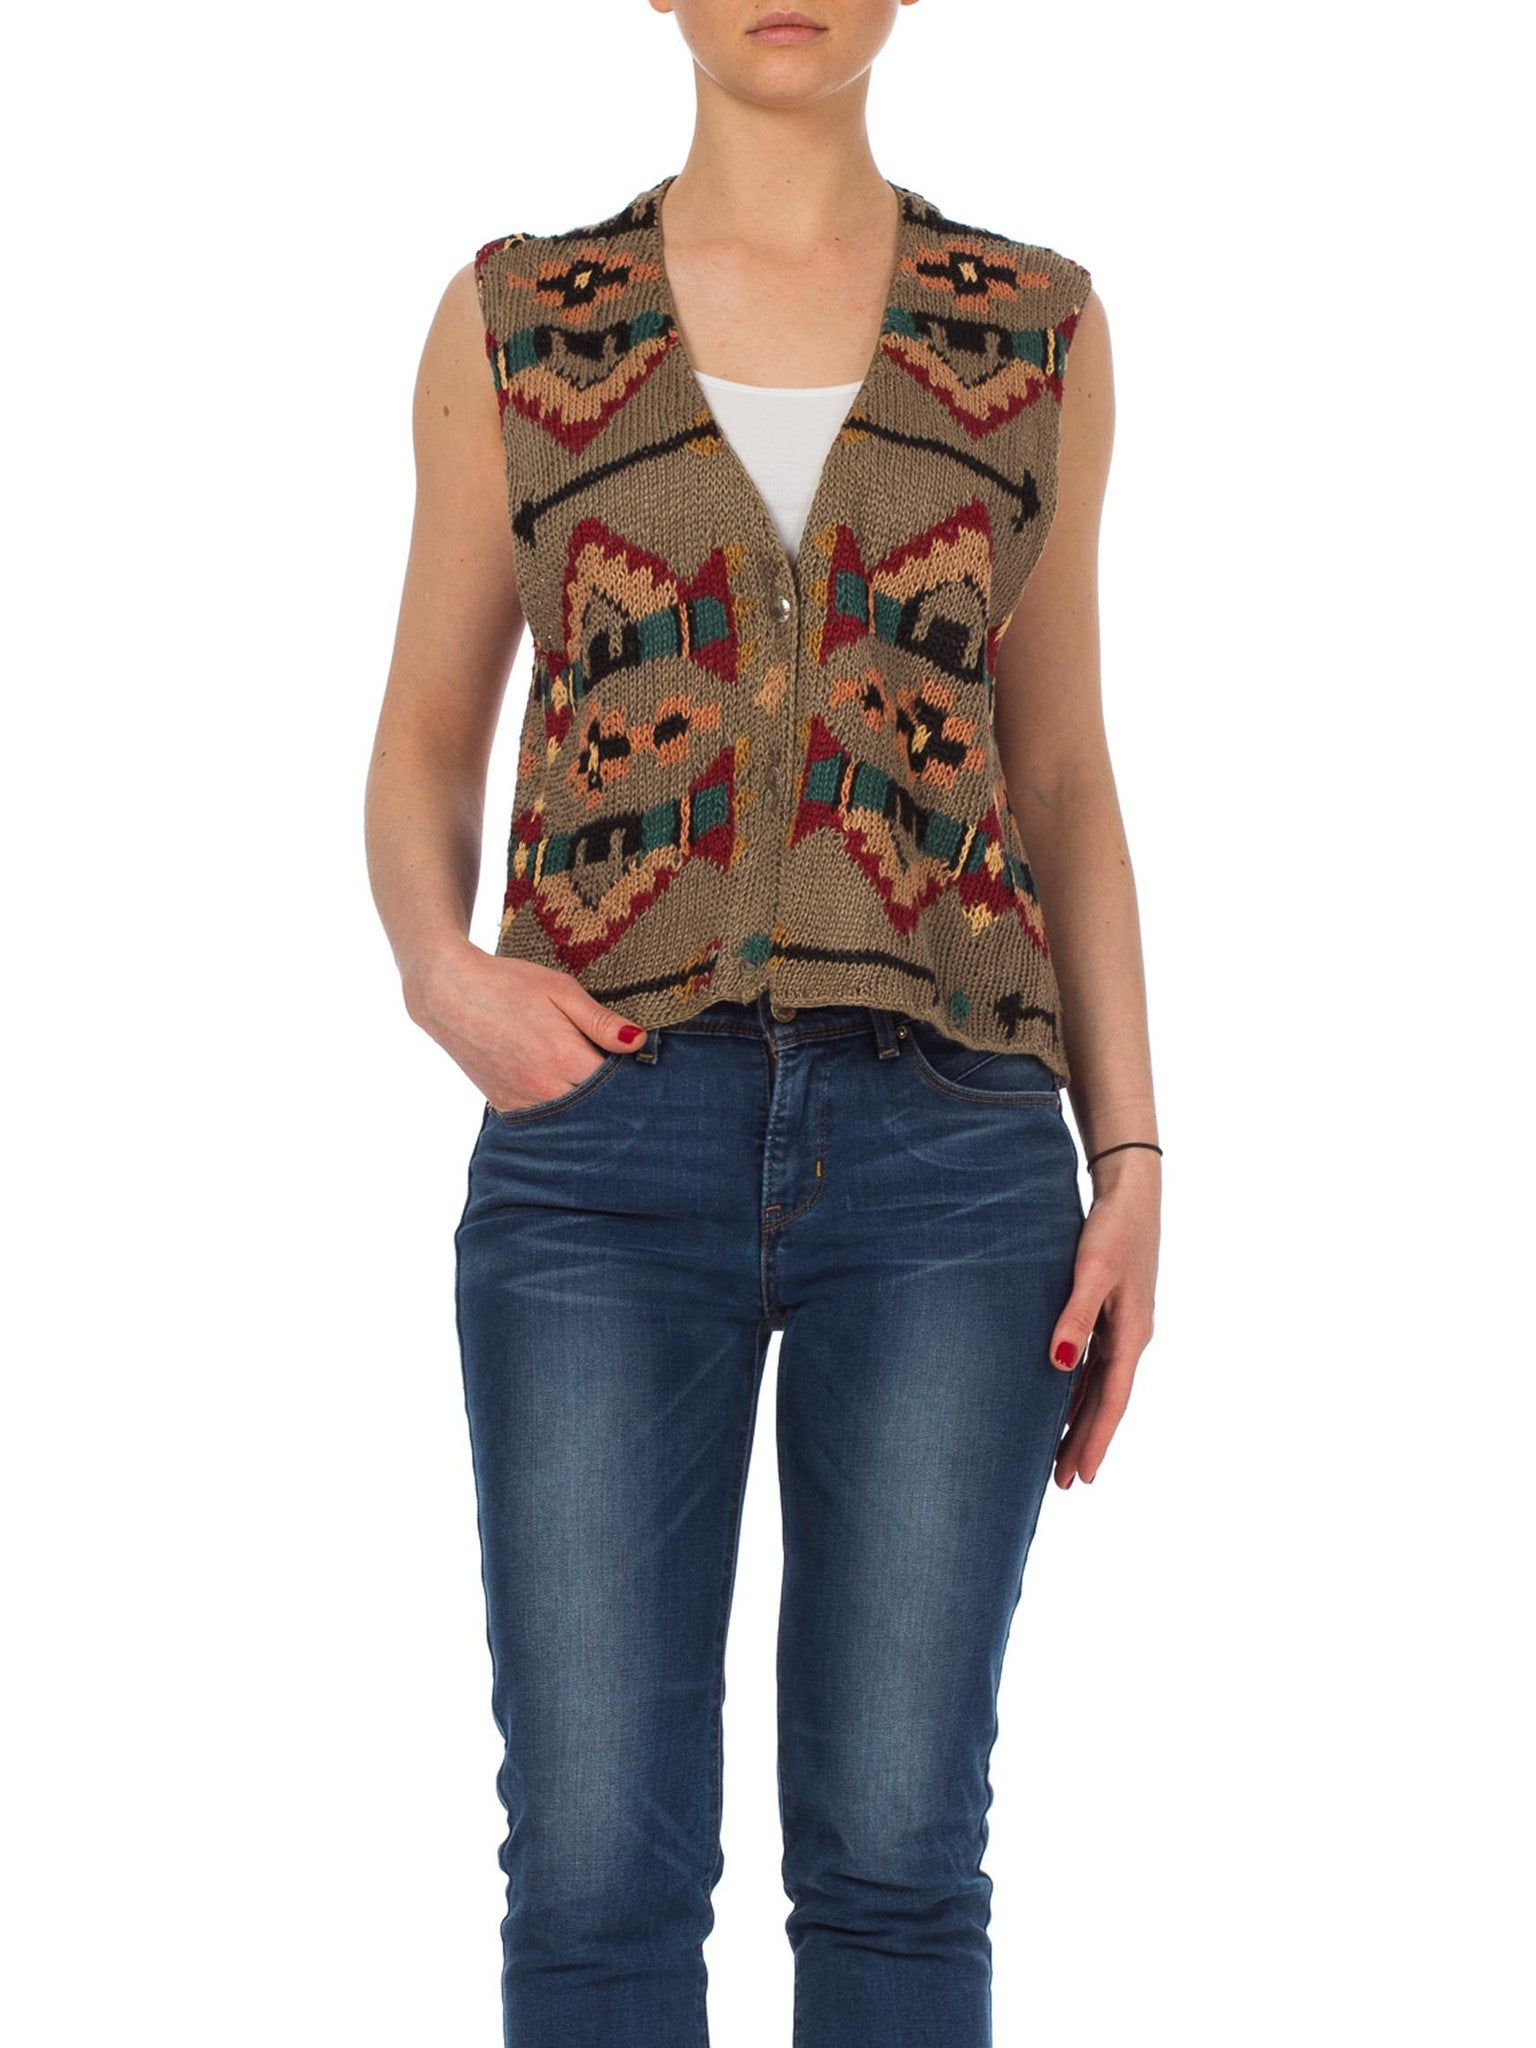 1980s Ralph Lauren Southwest Indian Blanket Style Hand Knitted Vest